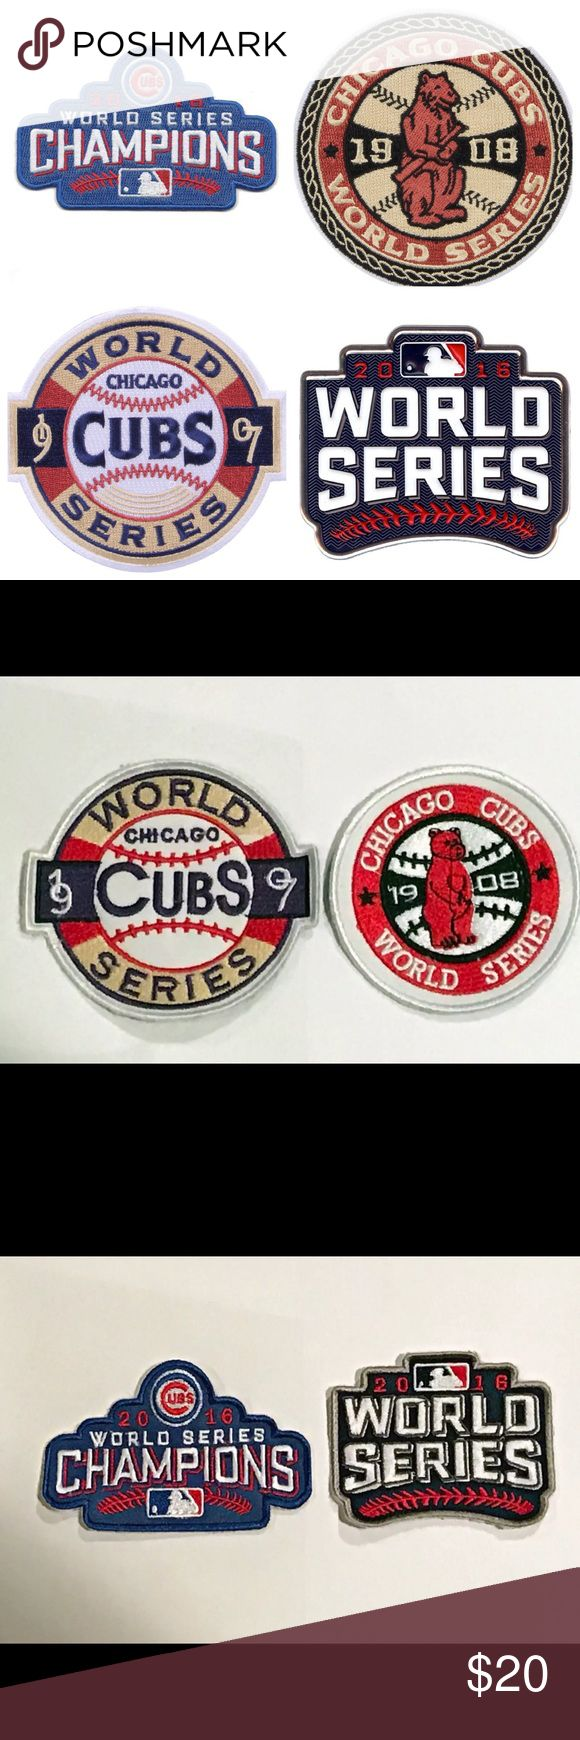 Chicago Cubs World Series Patch Collection (4) Chicago Cubs World Series Patch Collection. This set includes the 2016 World Series patch, the 2016 World Series Champions patch,the 1907 World Series and the 1908 World Series patches. A unique set to add to your collection at a great price. These retail from $10-$20 EACH. Grab them all for $20 shipped. Please check my listings for more Cubs merchandise including Majestic Athletic jerseys for Men, Women and Kids. Bryant. Rizzo. Baez. Contreras…